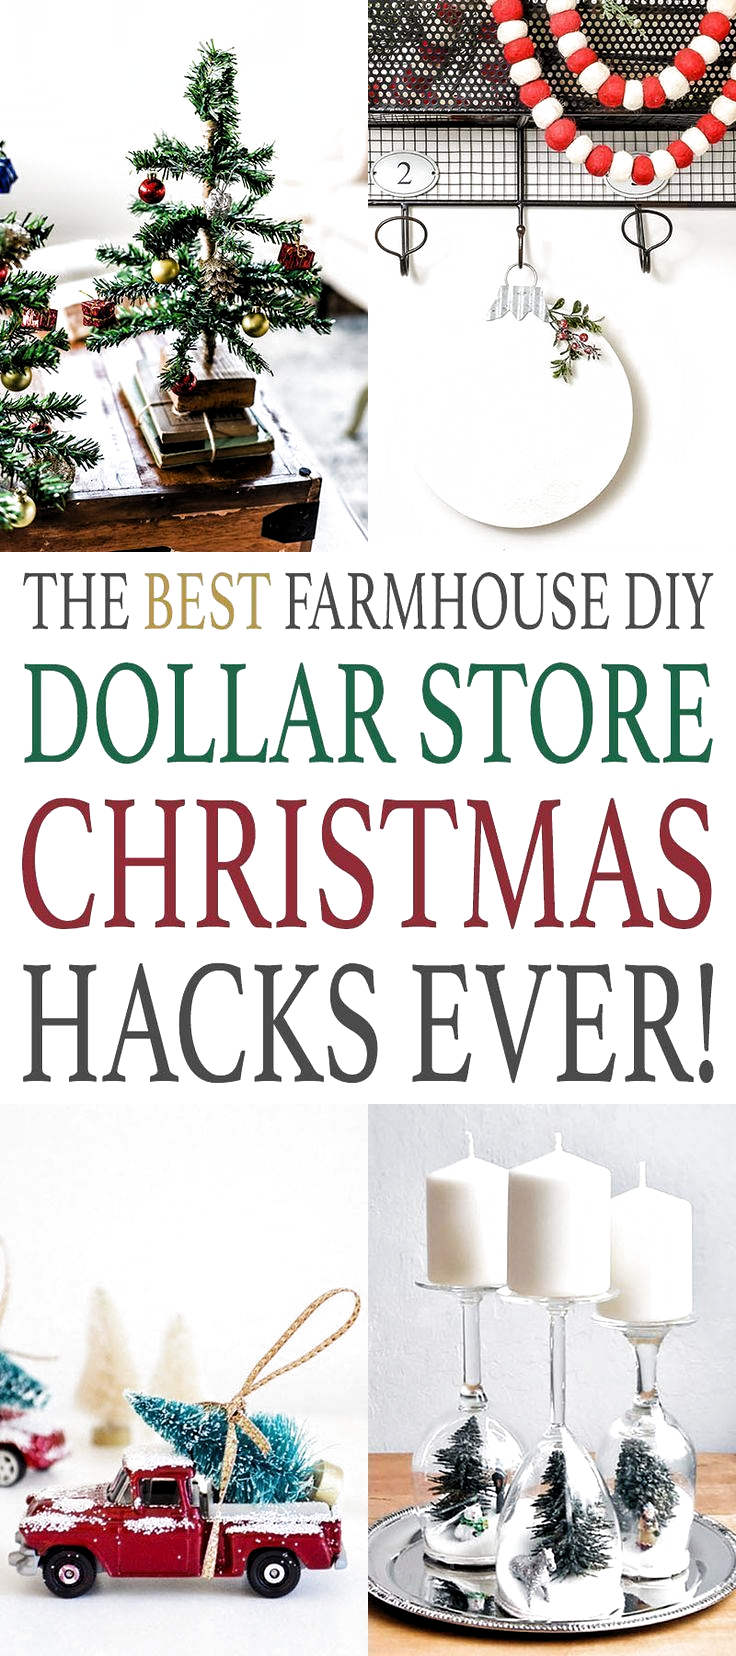 The Best Farmhouse DIY Dollar Store Christmas Hacks Ever! Its never too early to start planning what you will be making for the Christmas and Holiday Season. So check out these Farmhouse DIY Dollar Store Creations! Fabulous and Budget Friendly! #DIY #FarmhouseDIY #FarmhouseDIYDollarStoreHacks #DollarStoreHacks #FarmhouseDollarStoreHacks #DIYFarmhouseDollarStoreHacks